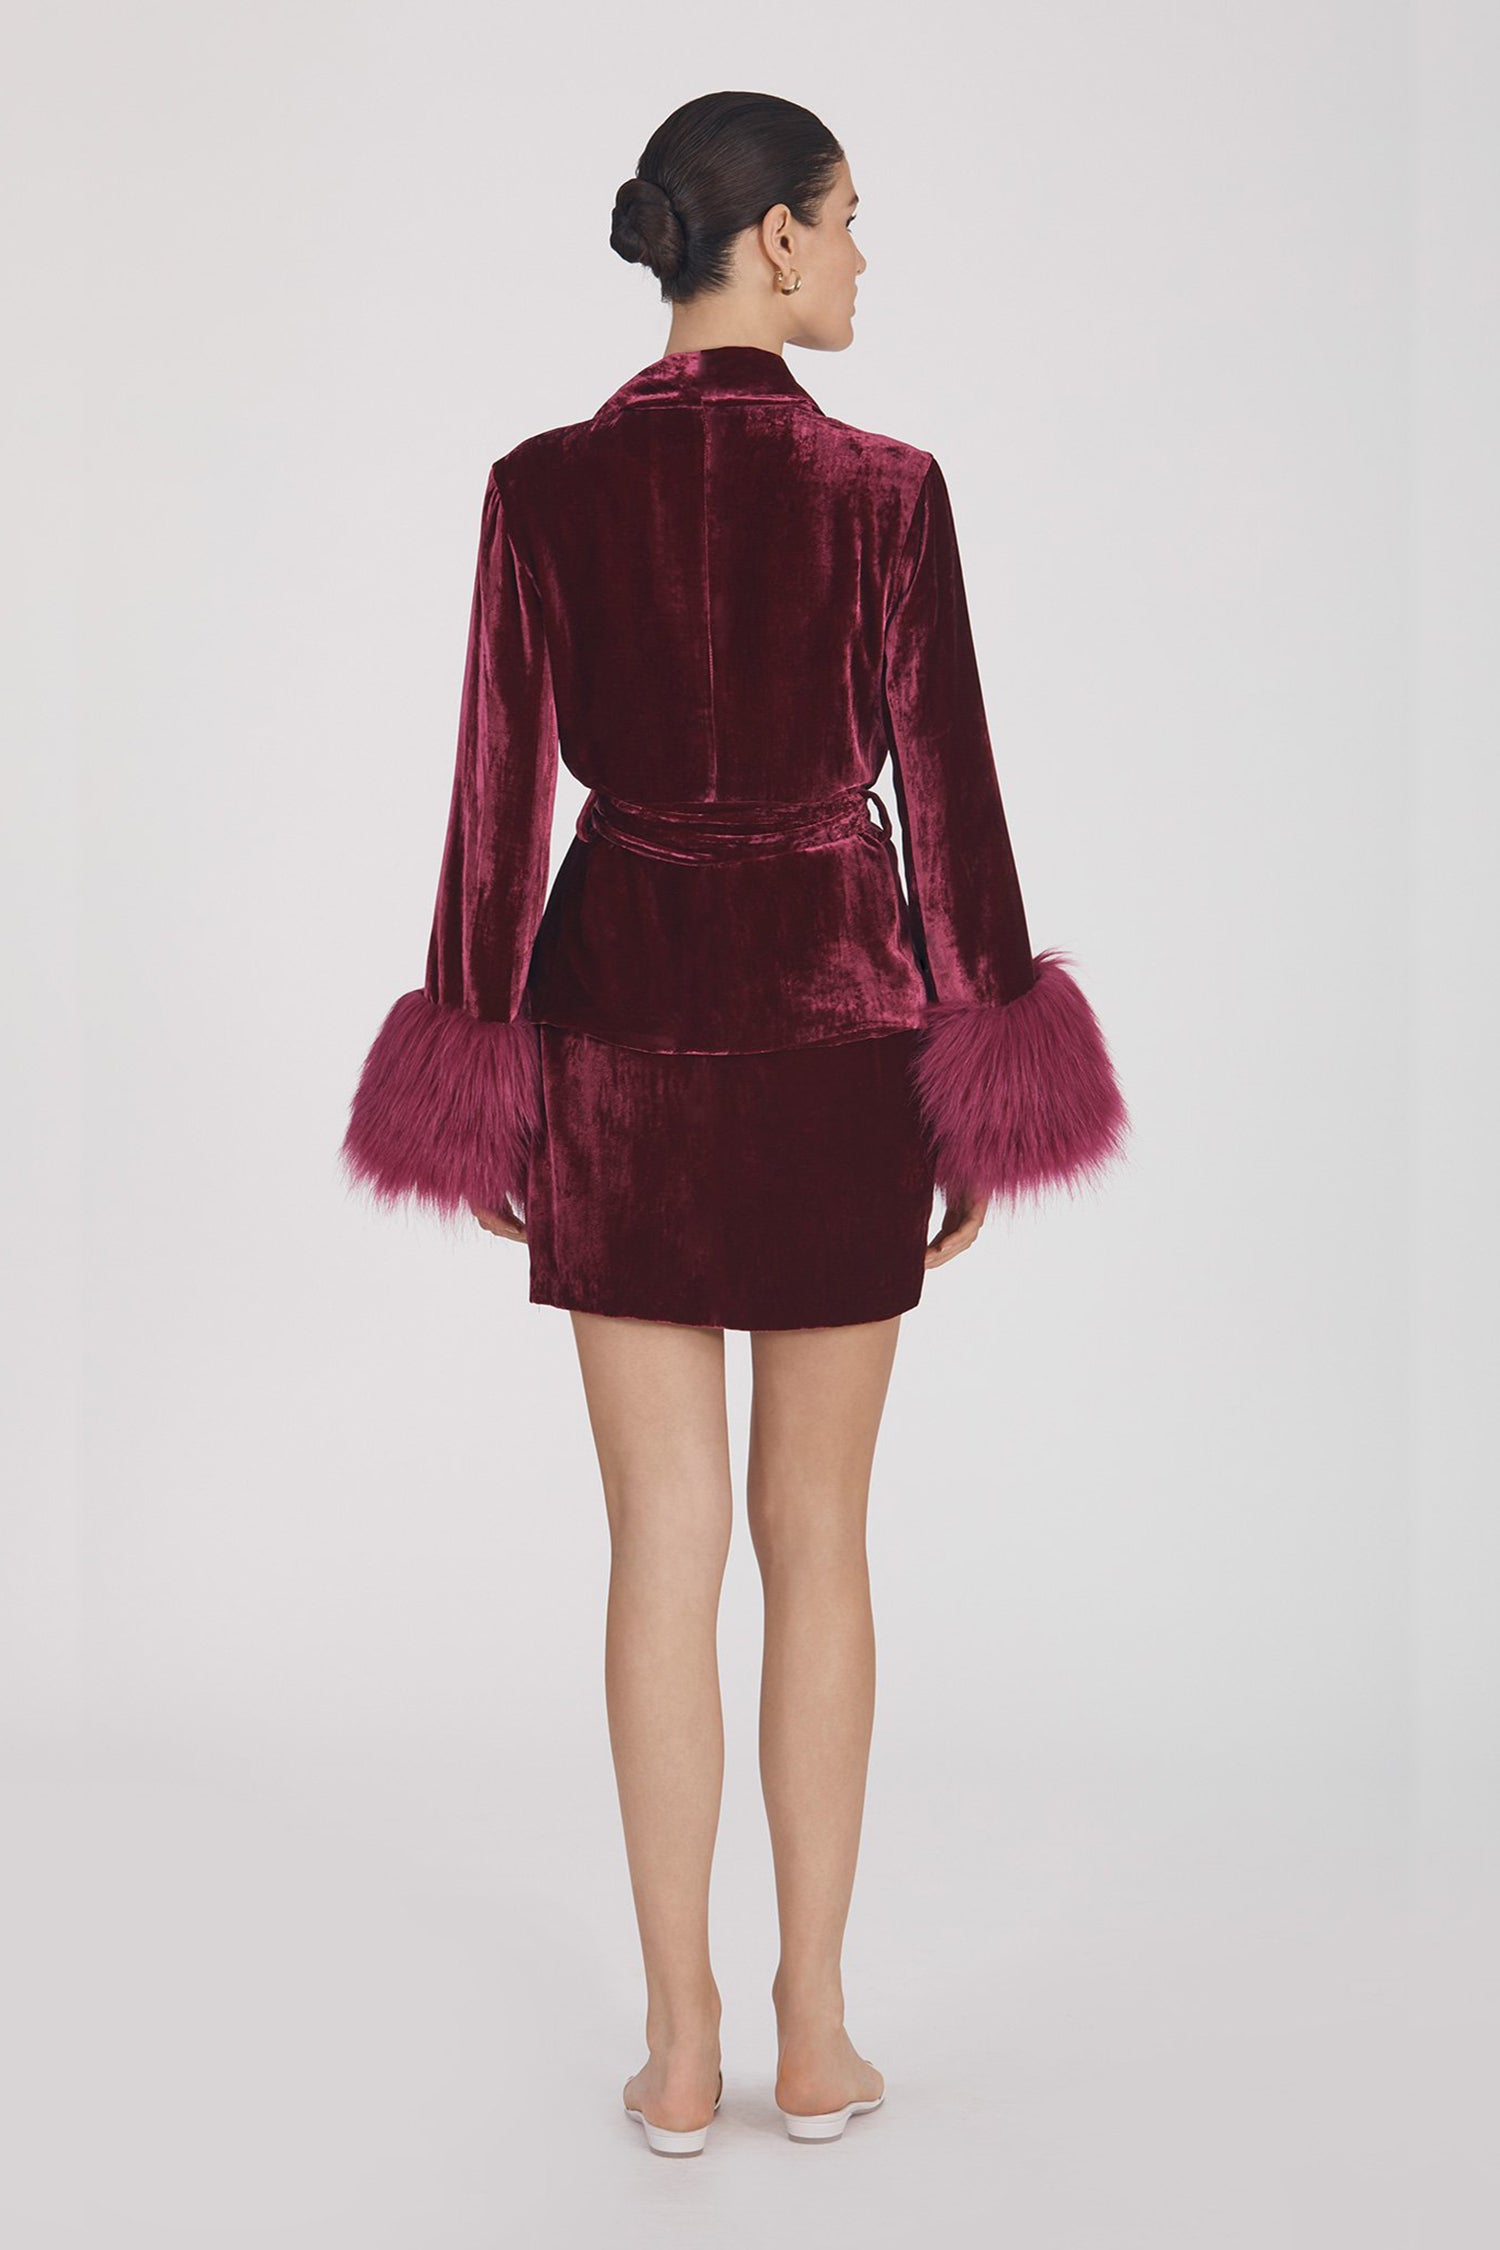 Marei1998's Clarkia Silk Velvet Jacket In Bold Raspberry Color. Featuring Lapel Collar and Bell Sleeves, Trimmed With Faux Fur. Matching Tip-up Belt To Define The Waist. Back View. Resort 2020 Collection - Furless Friendship.